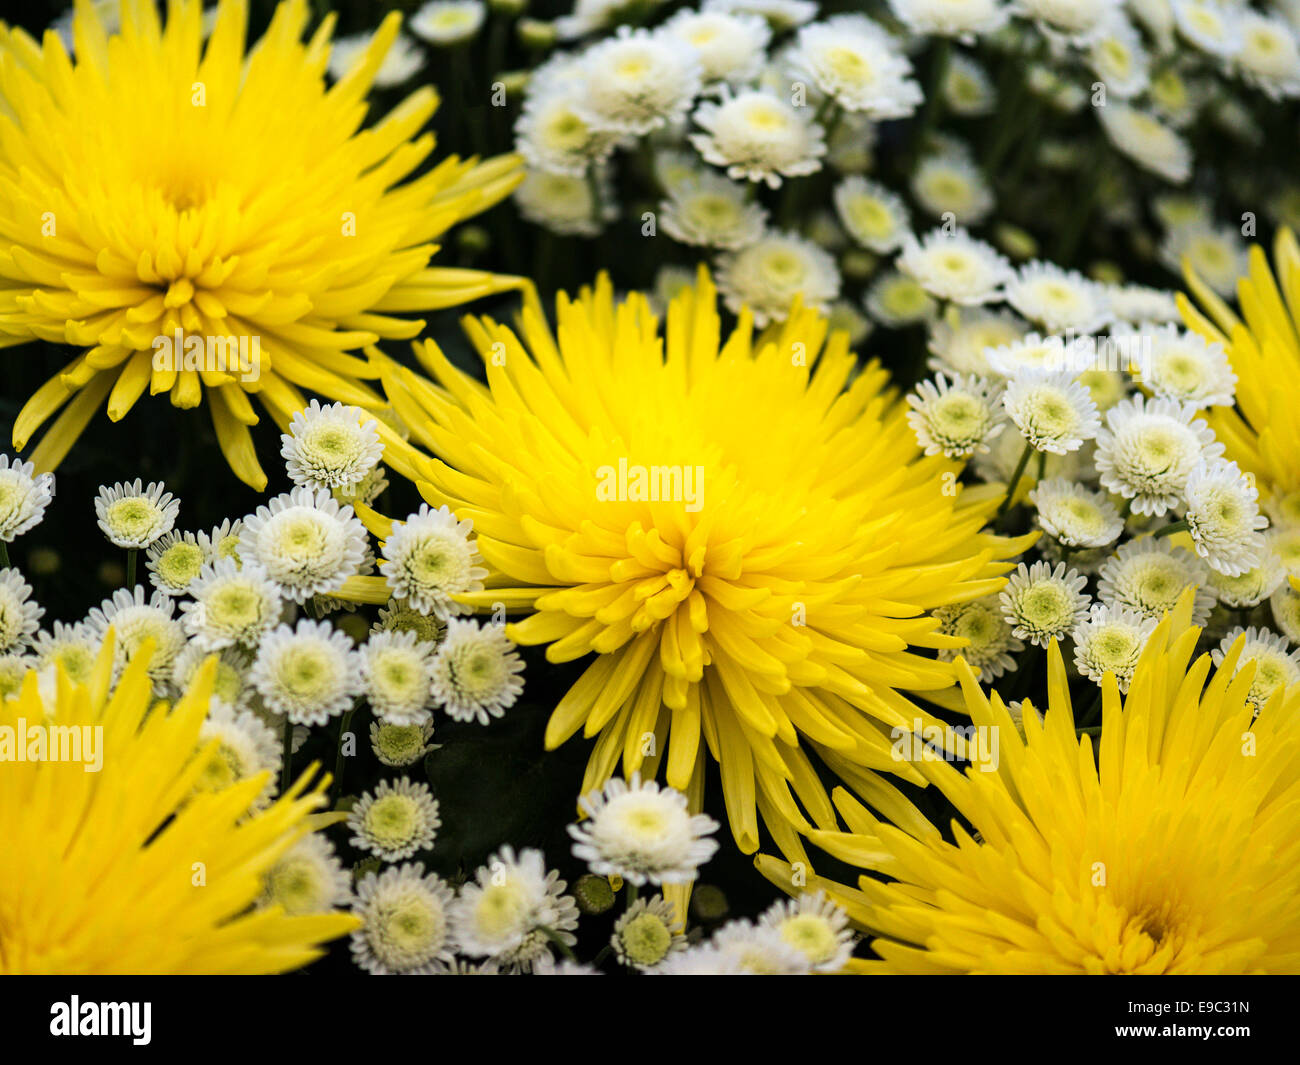 Mixed bouquet depicting yellow Chrysanthemum with white daisy fill. Stock Photo